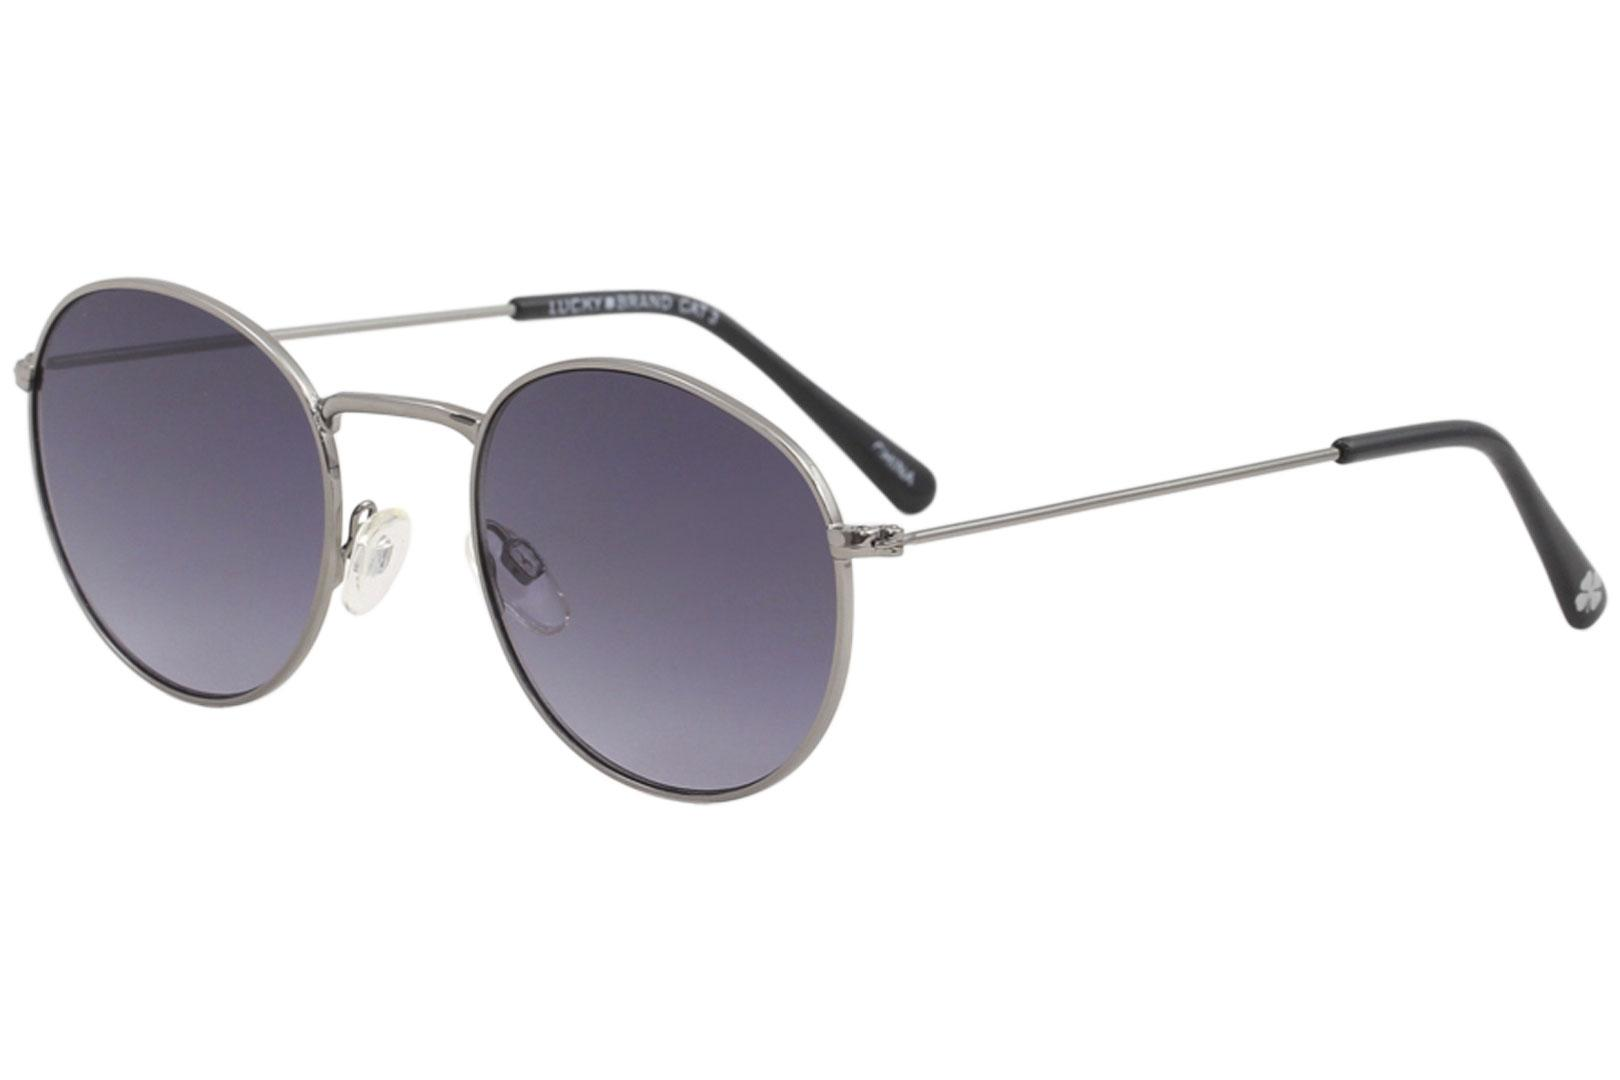 b3a55a322 Lucky Brand Men's Colton Fashion Oval Sunglasses by Lucky Brand